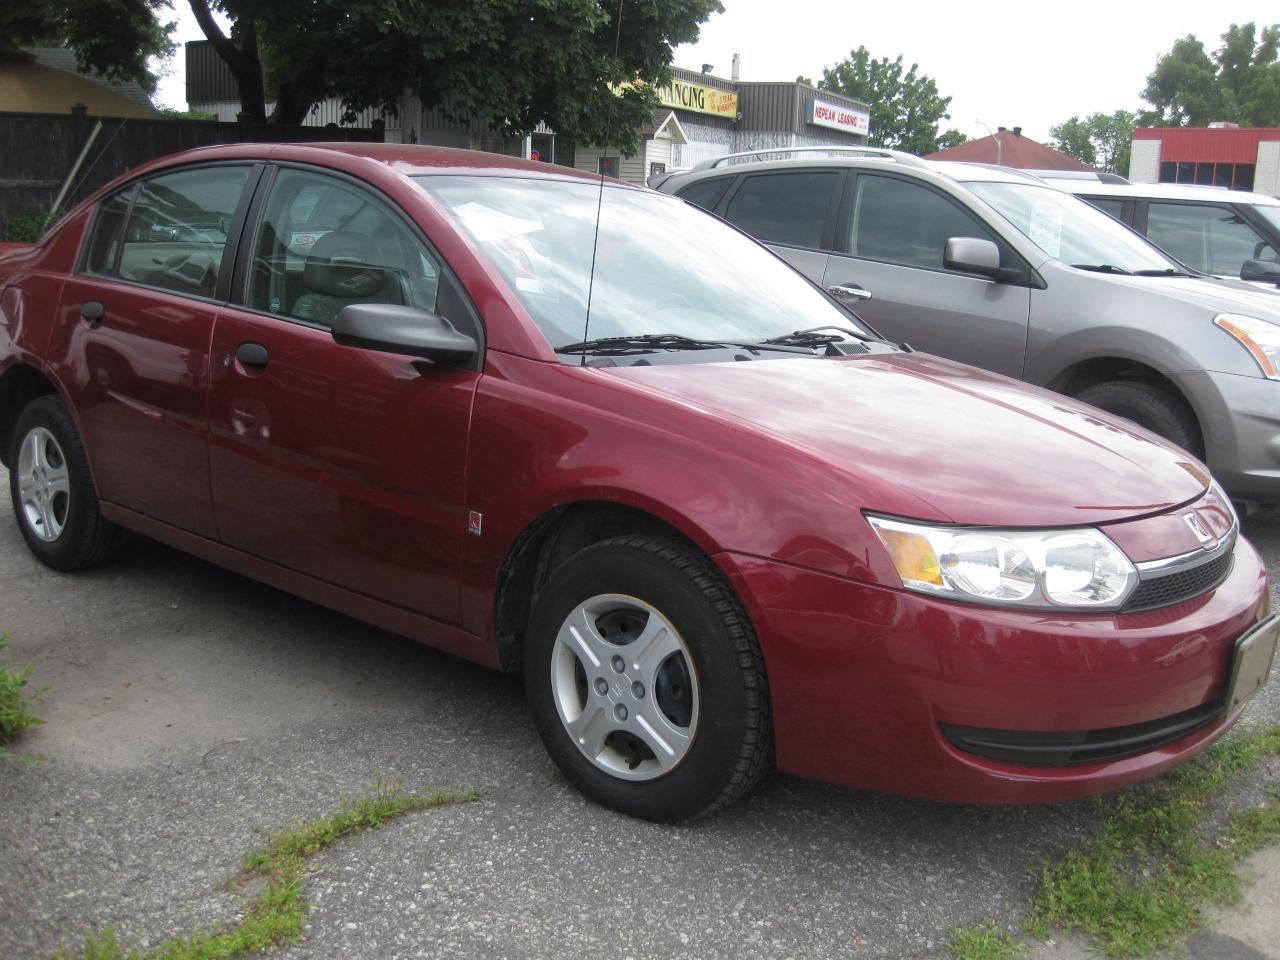 2004 Saturn Ion Base Auto FWD 4 cylinder 5 Pass low km for the yea